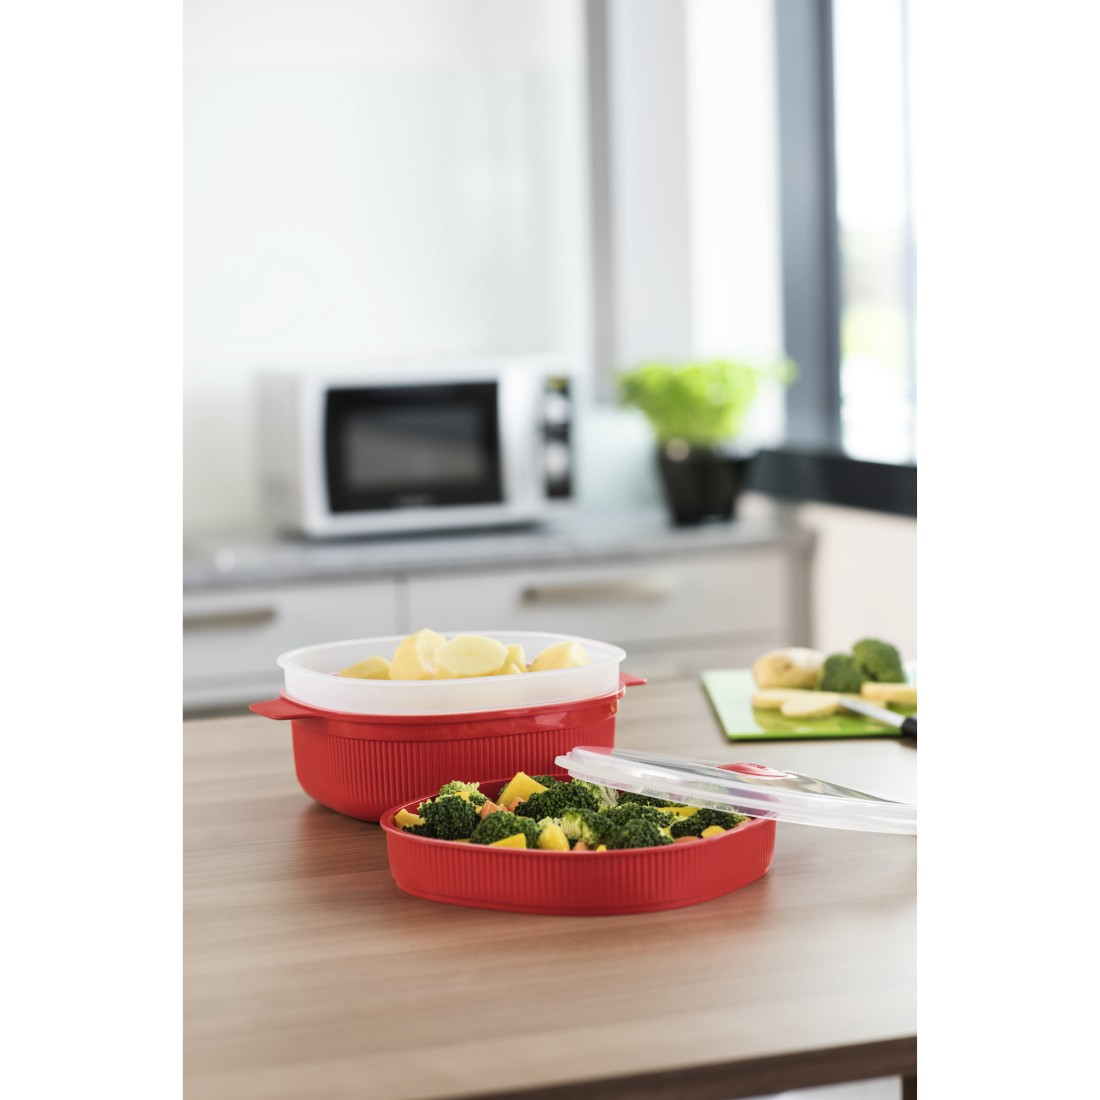 awx High-Res Appliance - Xavax, Microwave Steam Cooker, PP, 4 Litres, red